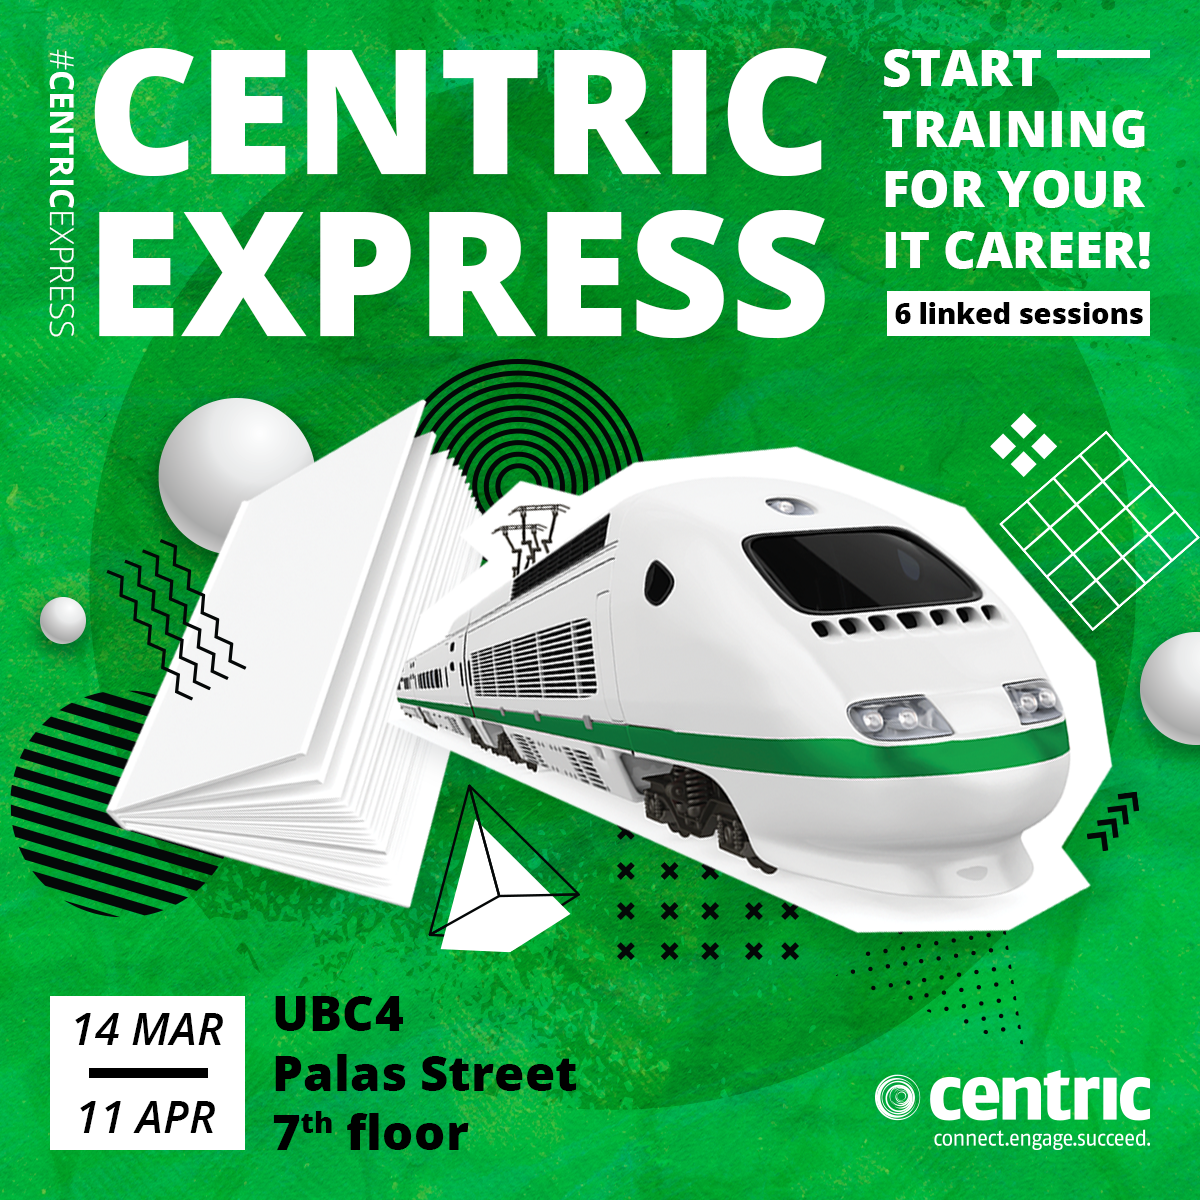 CentricExpress2020_SocialMediaPosts_General